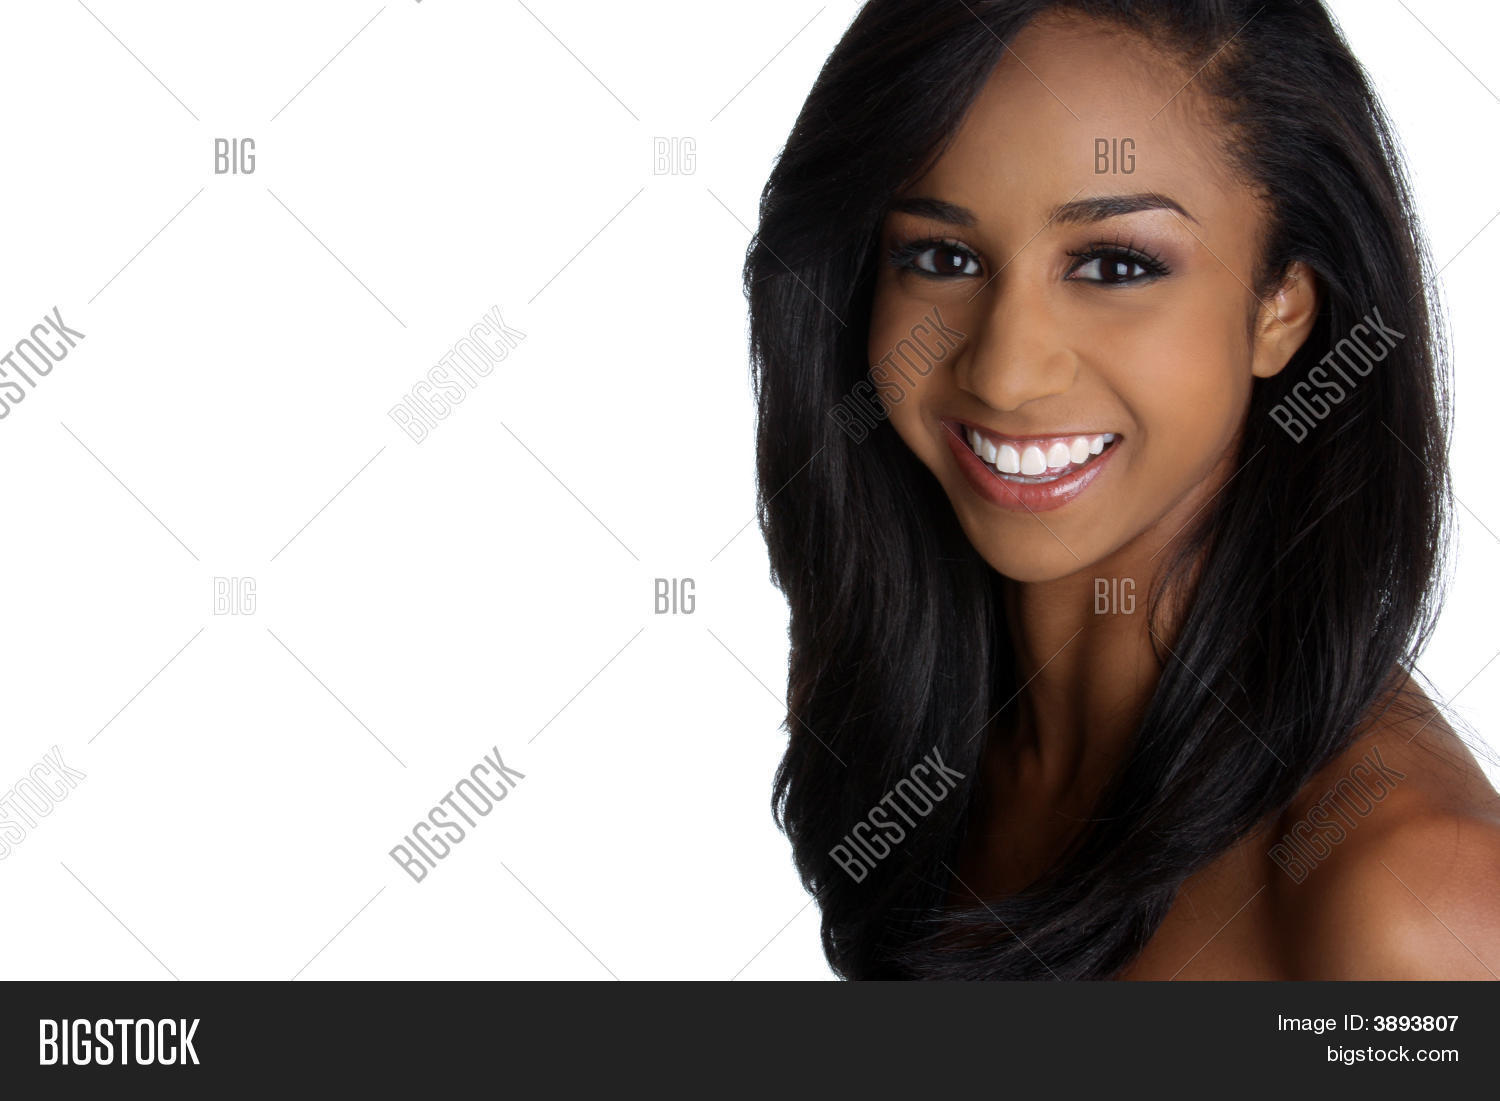 African American Images, Illustrations, Vectors - African American ...